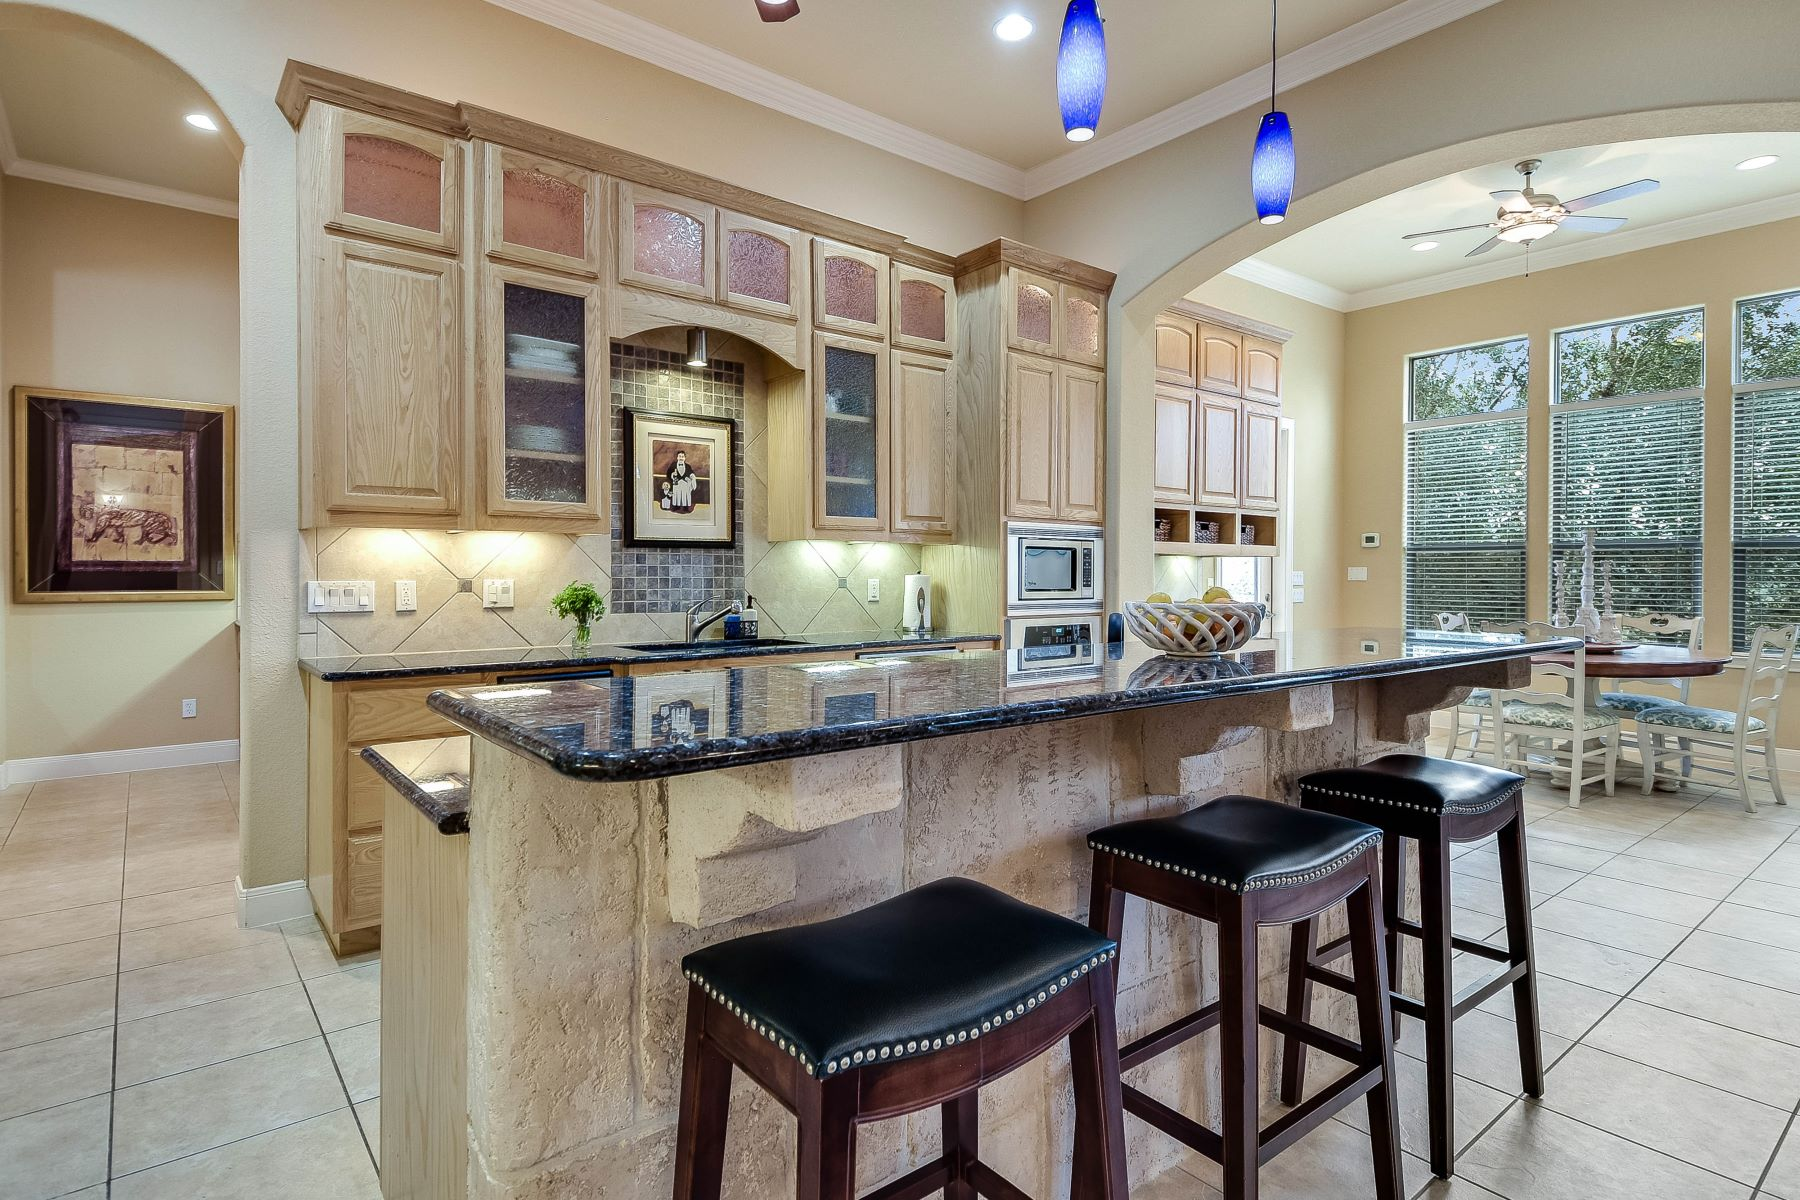 Additional photo for property listing at Unique Hill Country Property 319 Westin Hills New Braunfels, Texas 78132 United States